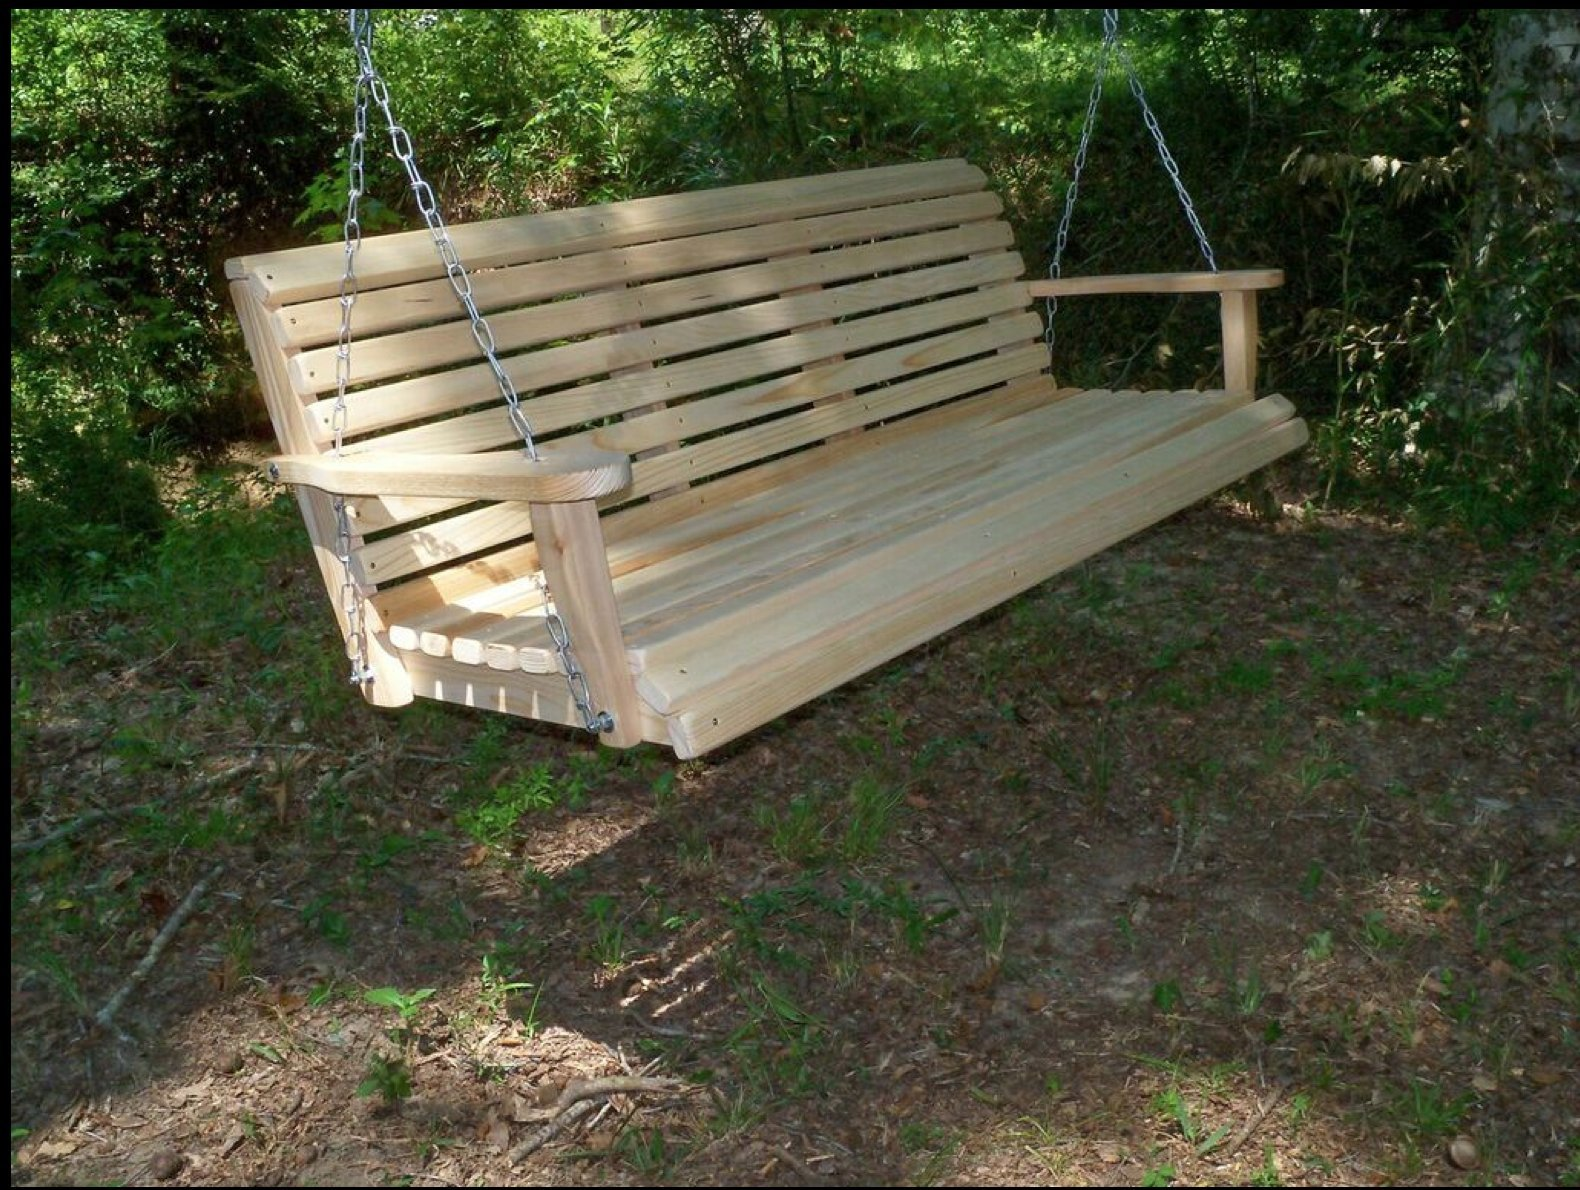 5 Five Feet Ft Made in the USA Rot Resistant Cypress Lumber Roll Back Porch Swing with Swing-mateTM Comfort Springs